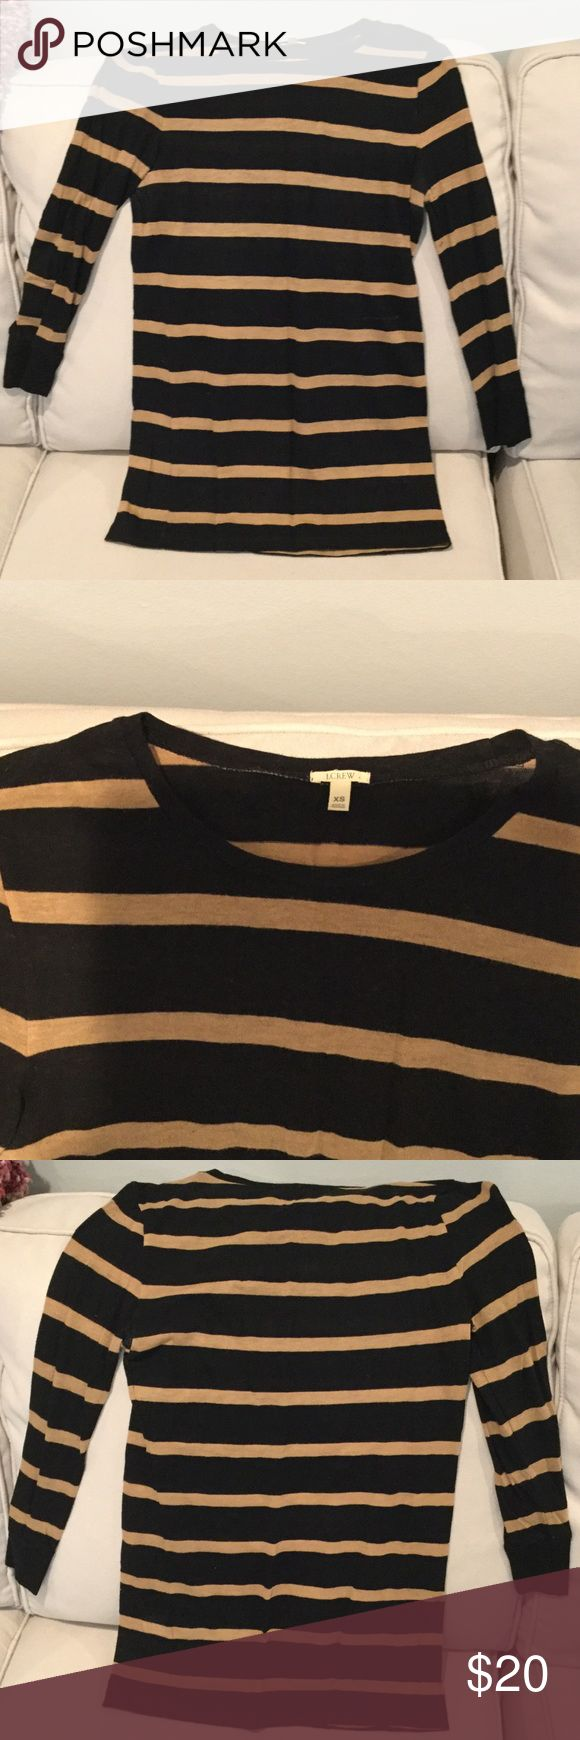 JCrew 3/4 Sleeve Top Classic camel and black stripe.  Viscose and wool blend give this a nice hand, it feels like a cross between a knit and a light sweater.  Somewhat sheer, so you may want to wear a cami under! J. Crew Sweaters Crew & Scoop Necks